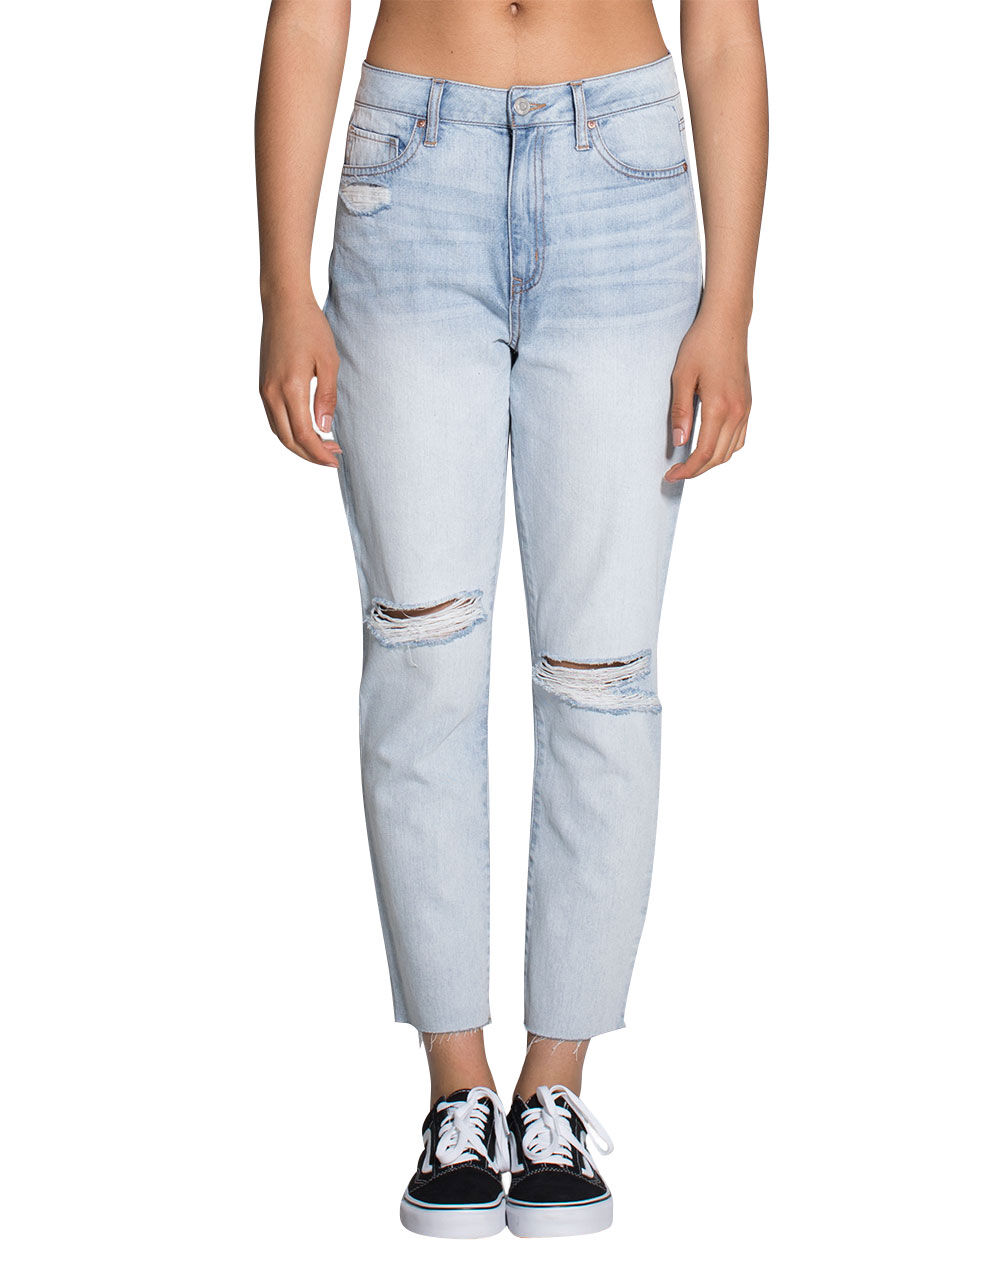 RSQ RIPPED MOM JEANS